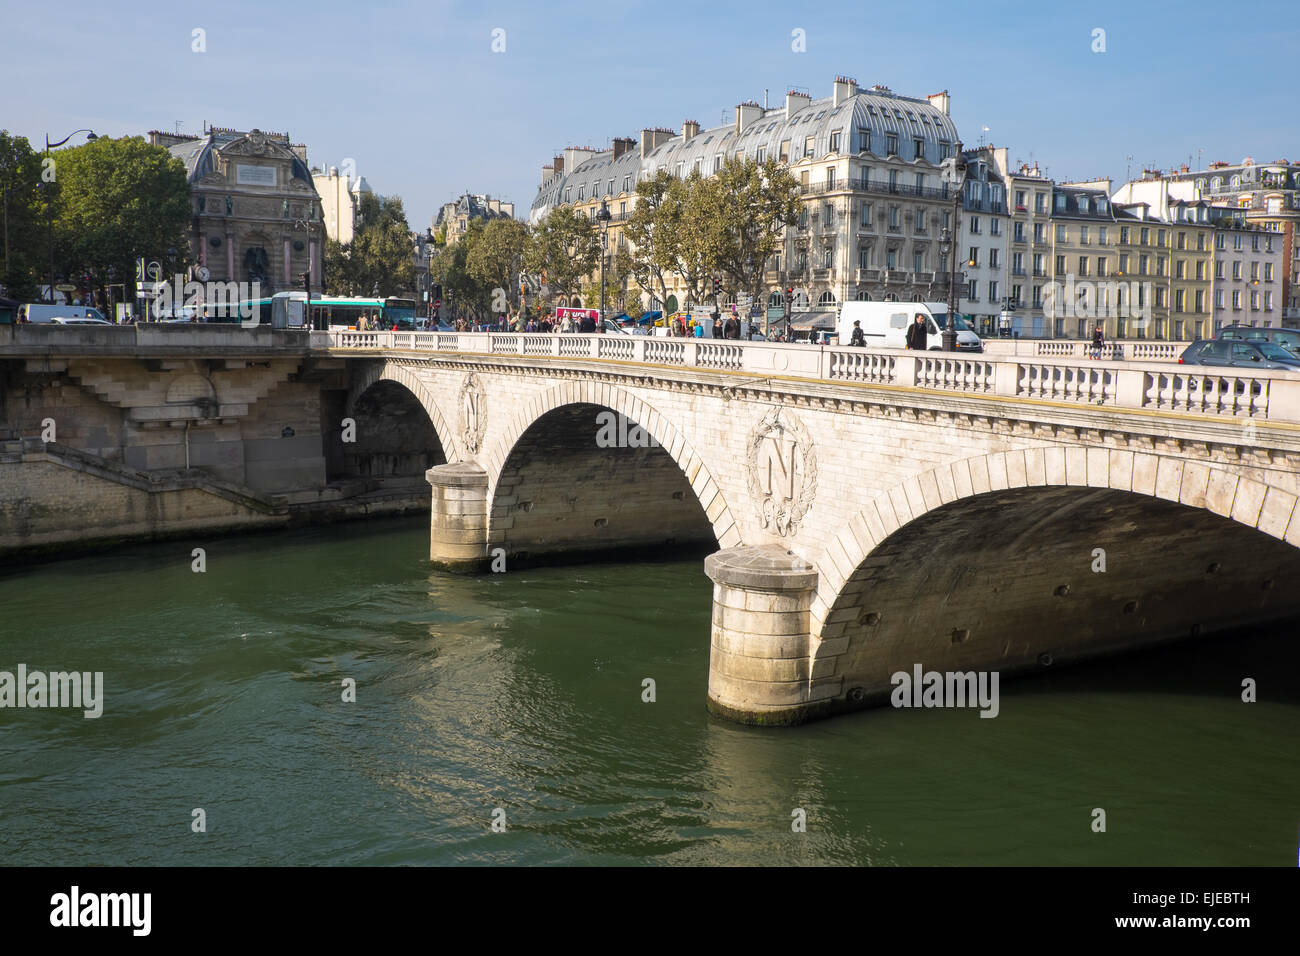 The Pont Au Change bridge, bearing the imperial insignia of Napoleon, crosses the River Seine in Paris, France. - Stock Image